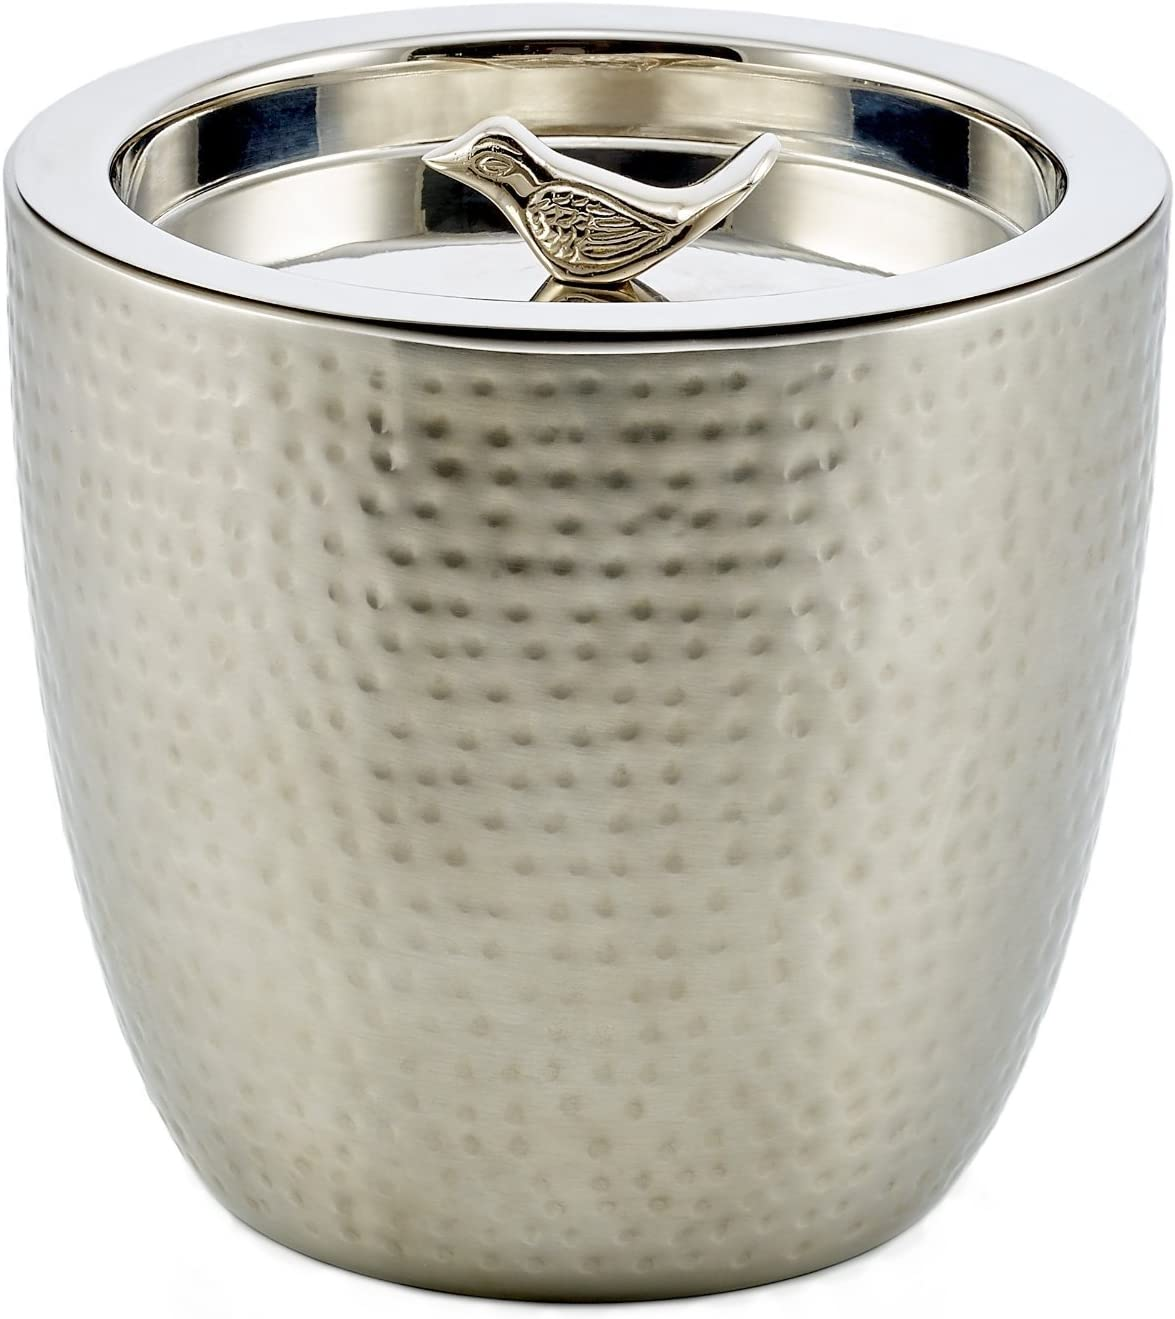 Old Dutch 'Churp' Hammered Double Walled Stainless Steel Ice Bucket with Bird Knob, 11/2 quart [並行輸入品]